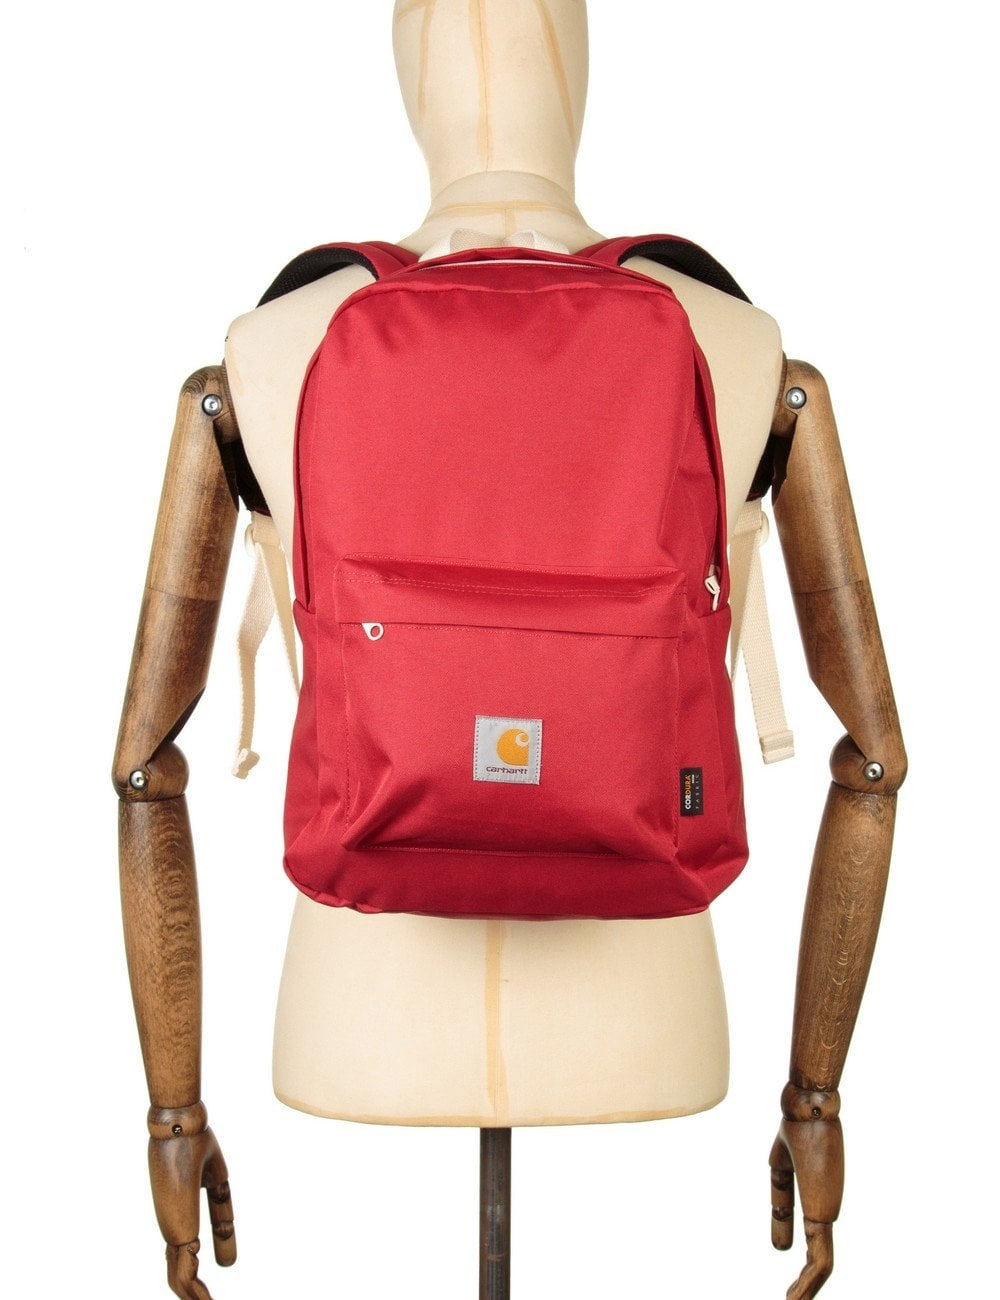 Carhartt WIP Watch Backpack - Red - Accessories from Fat Buddha Store UK